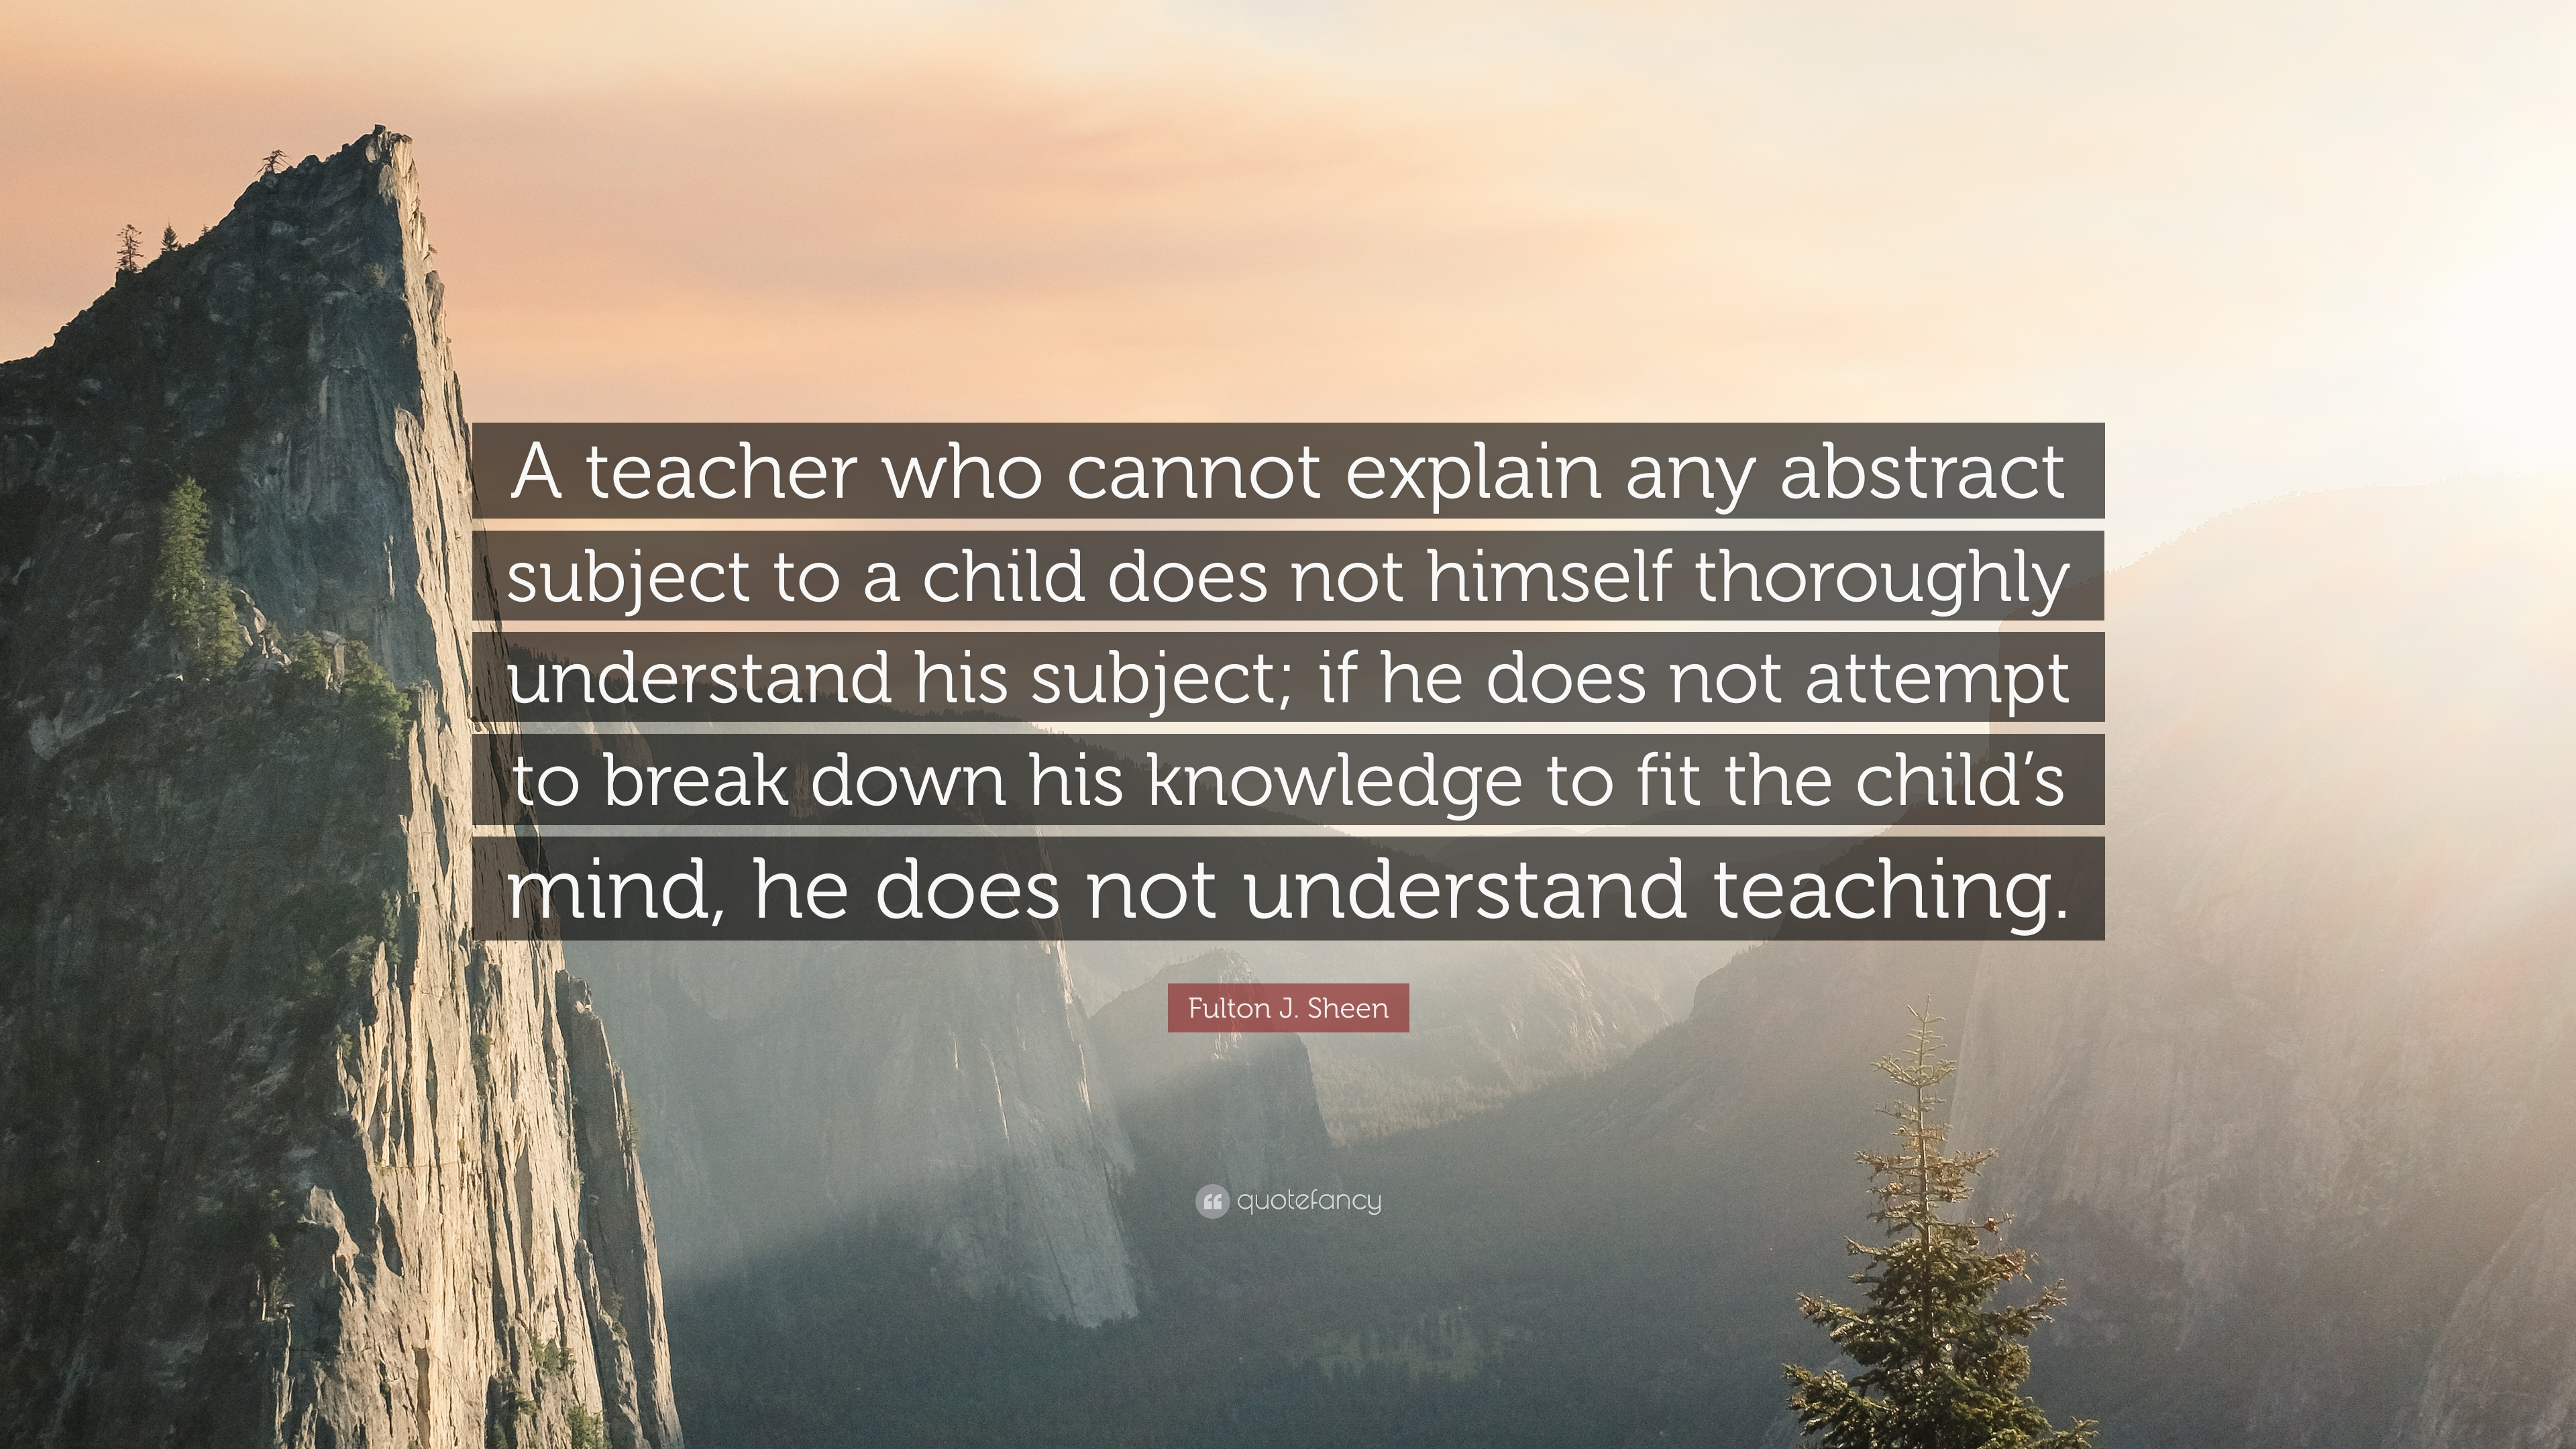 fulton j sheen quote a teacher who cannot explain any abstract fulton j sheen quote a teacher who cannot explain any abstract subject to